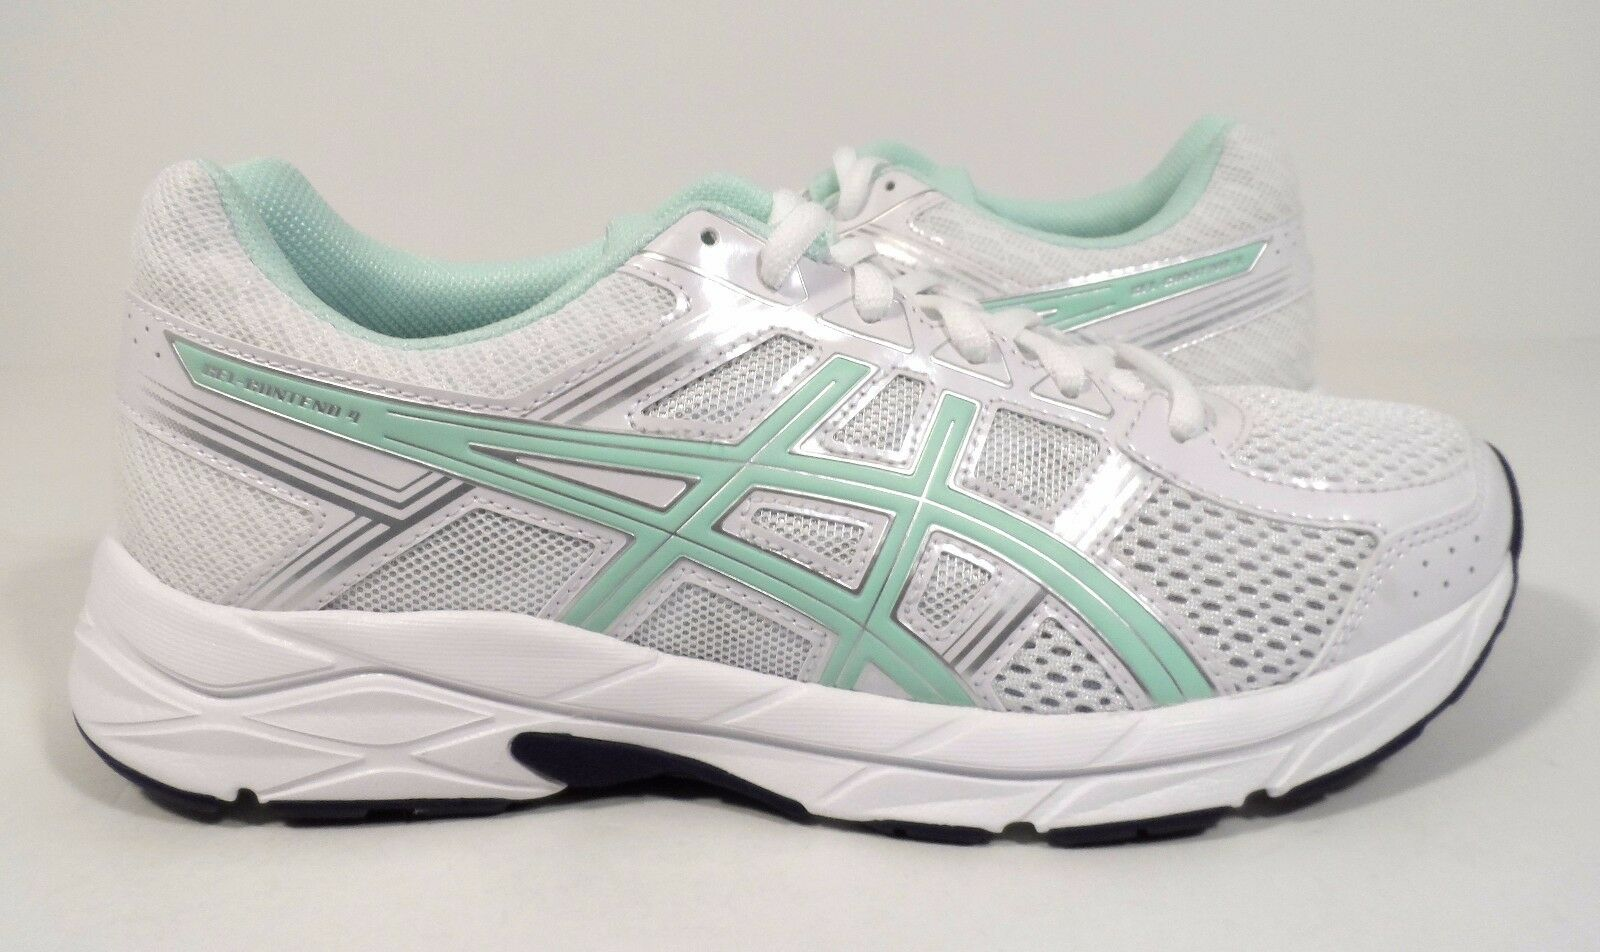 ASICS Women's Gel-Contend 4 Running shoes, White Bay Silver, 11 M US